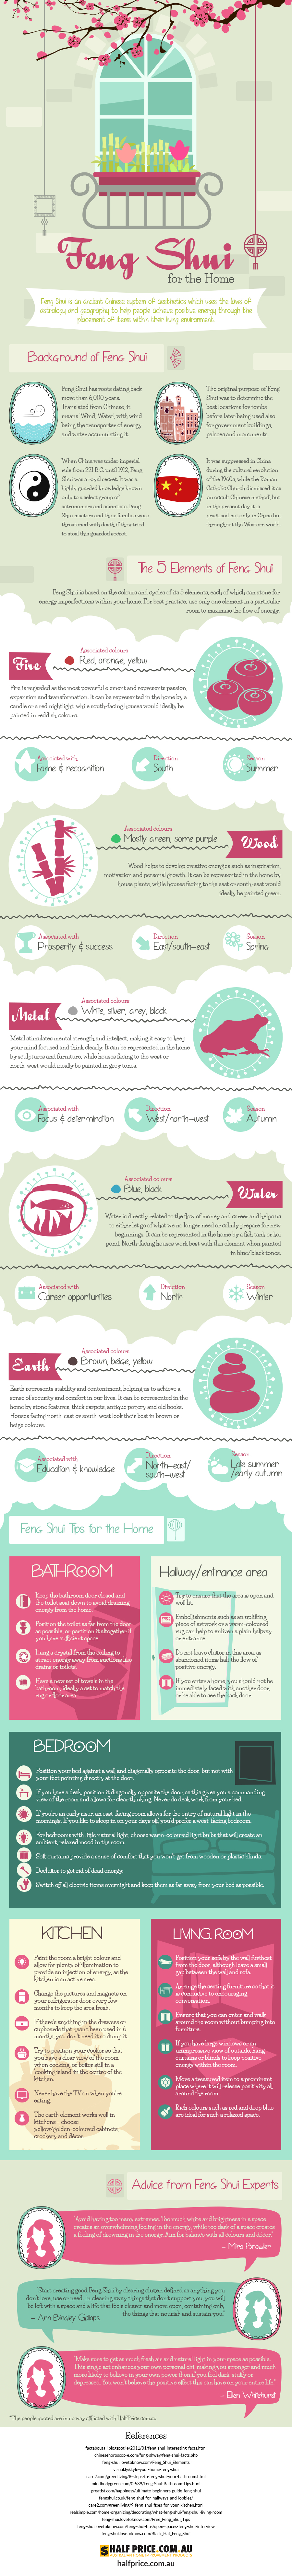 Feng Shui for the Home - Infographic